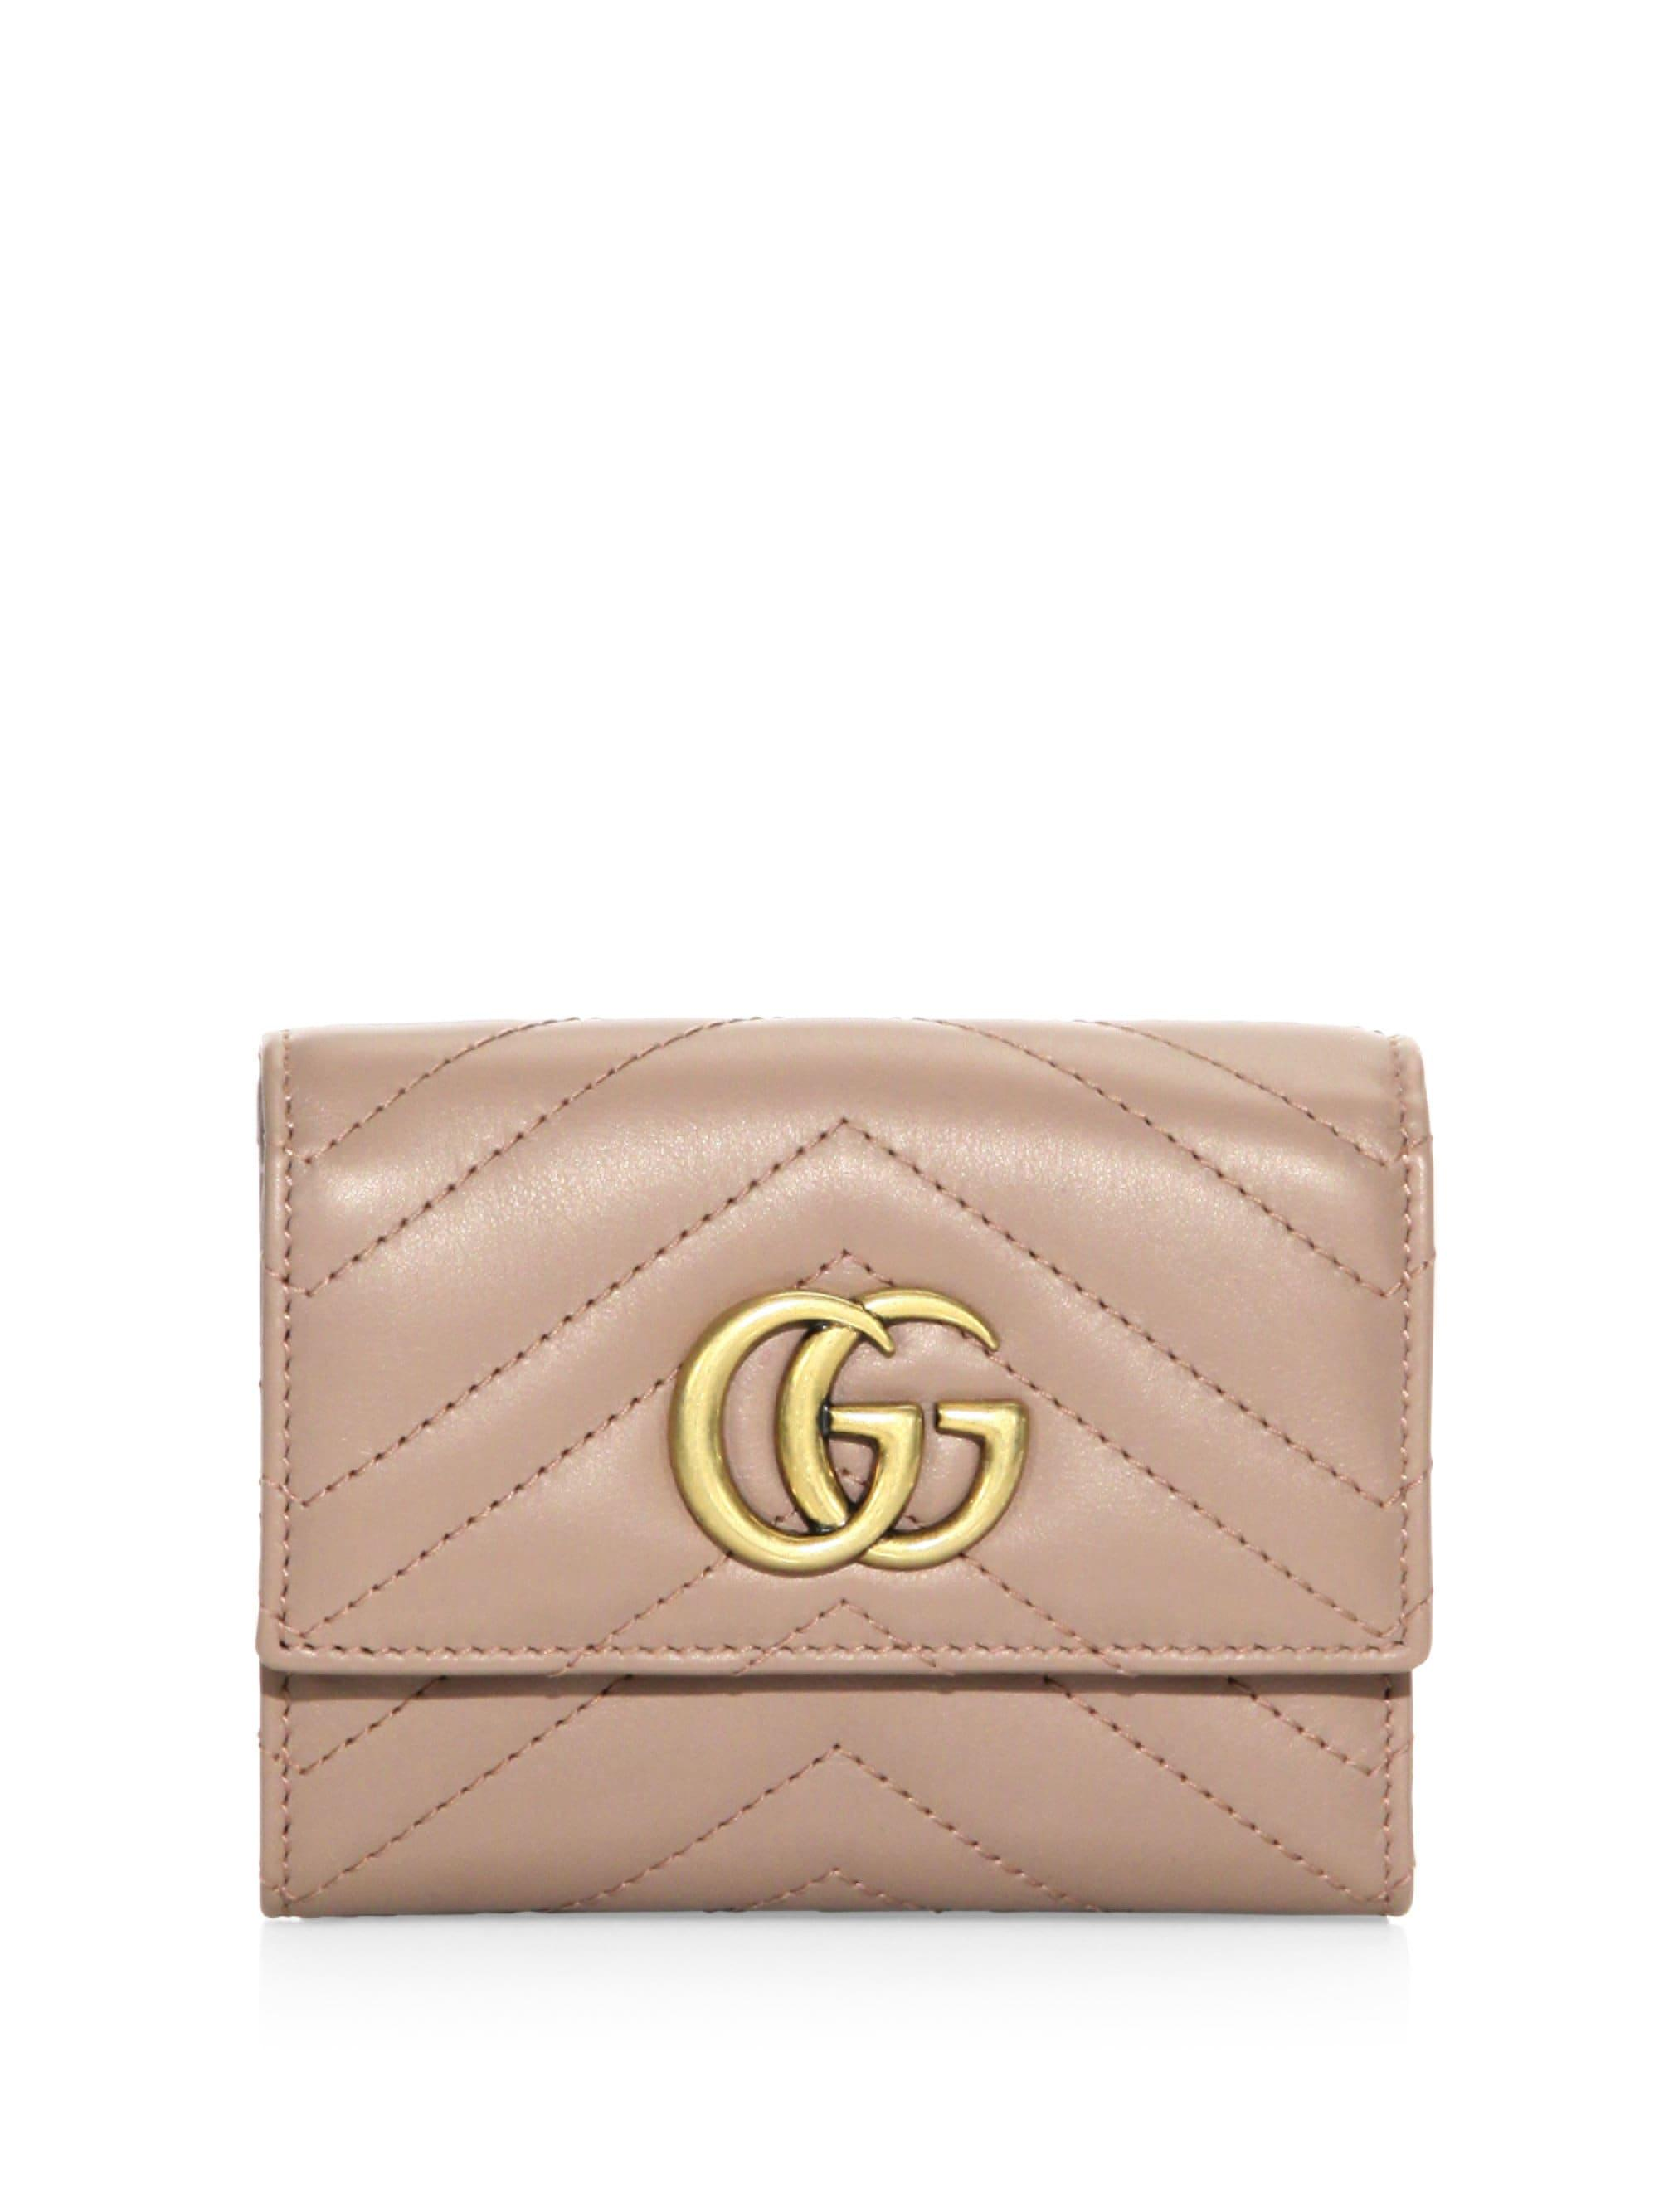 598cbee524a1 Lyst - Gucci Women's GG Marmont Matelassé Leather Wallet - Black in ...